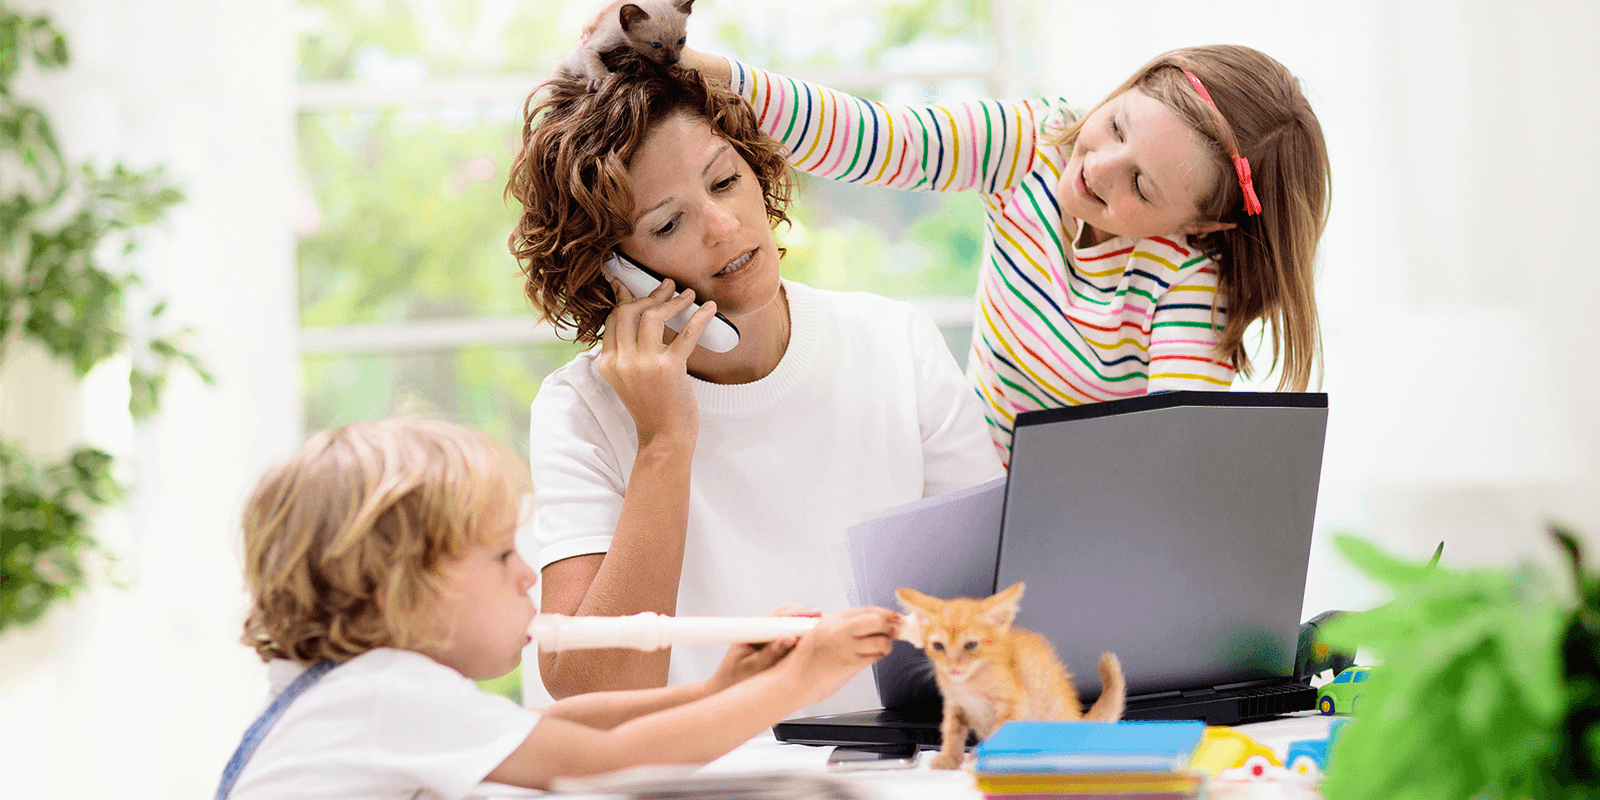 work environment - kids interrupt1 - What's The Best Work Environment for Your Personality? [Quiz]